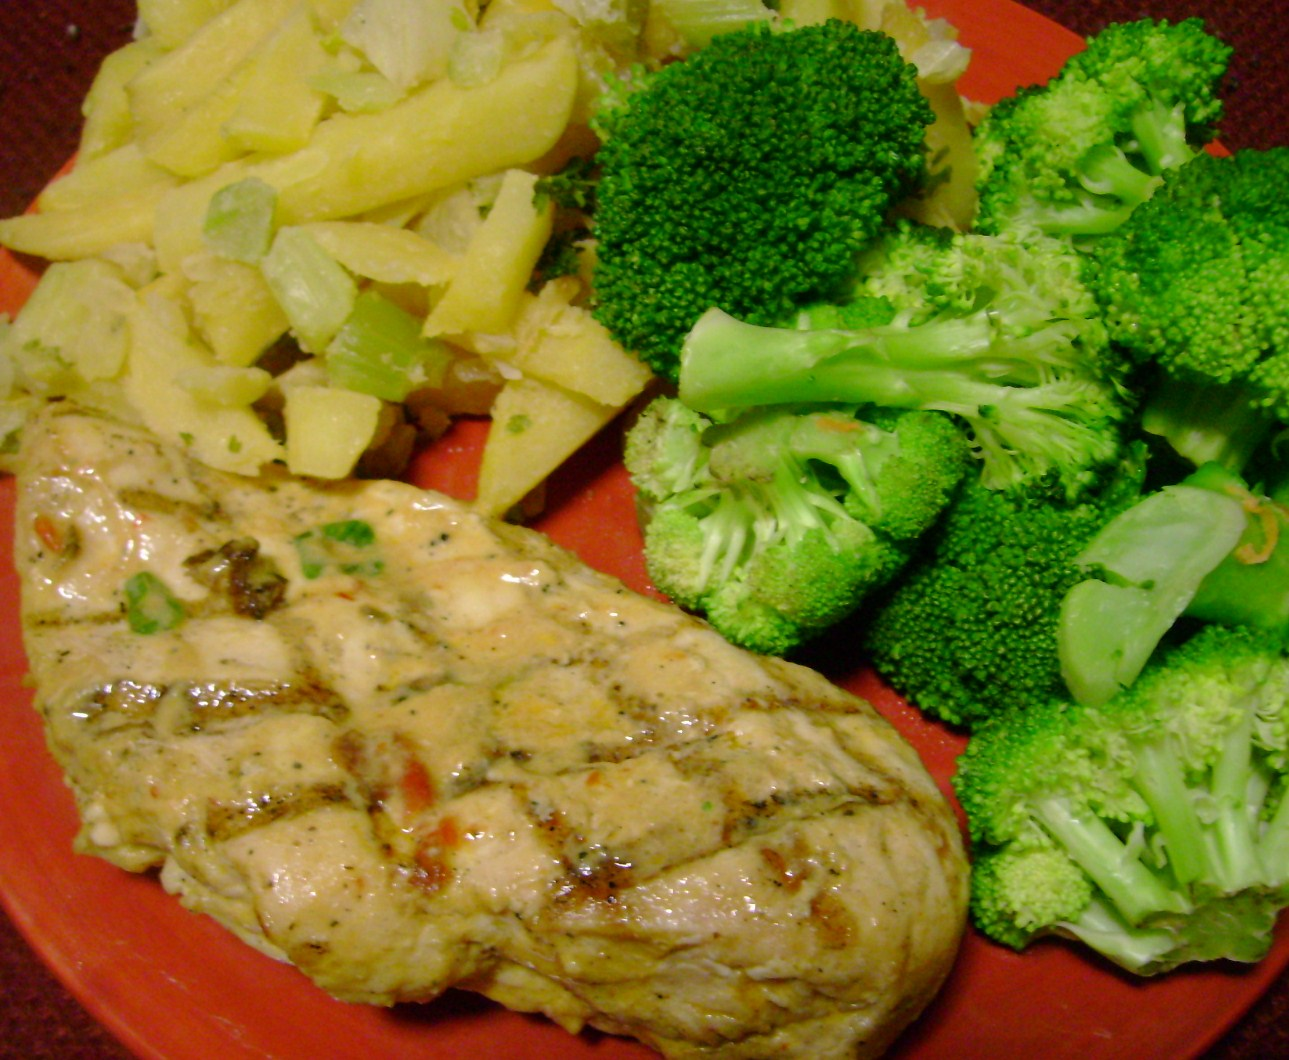 Chipotle Lime Chicken, Herbed Turnips, Broccoli